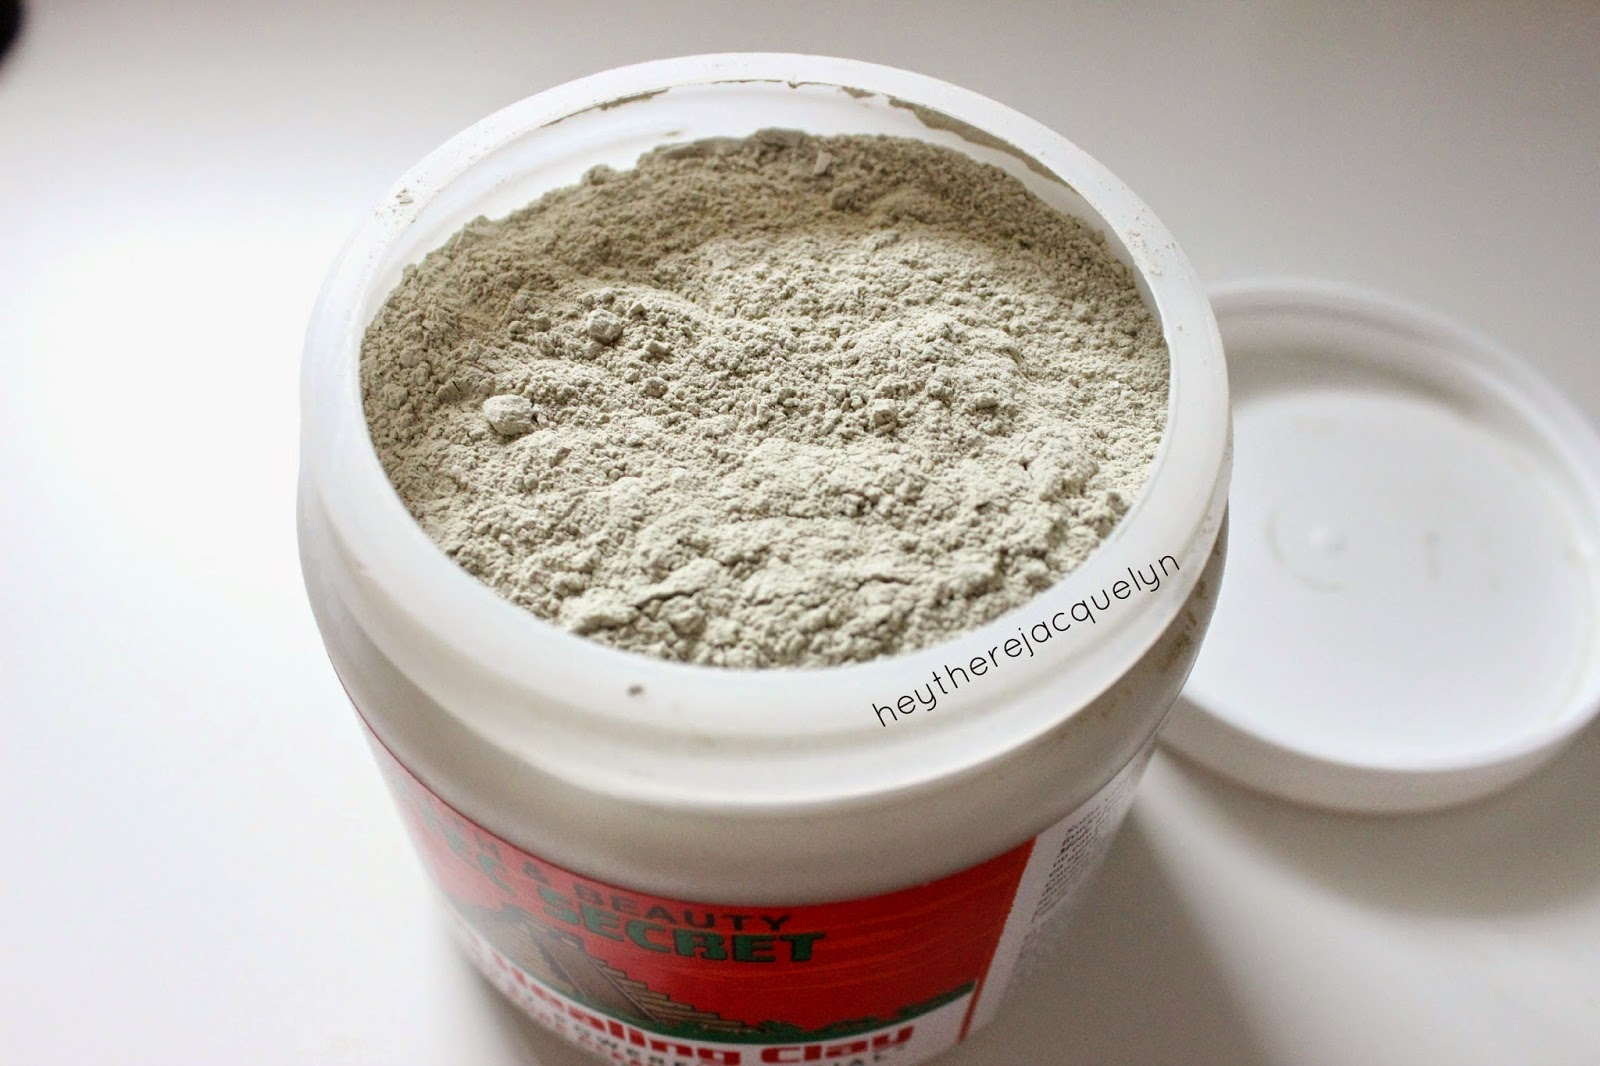 Aztec Secret Indian Healing Clay will keep pores tight picture